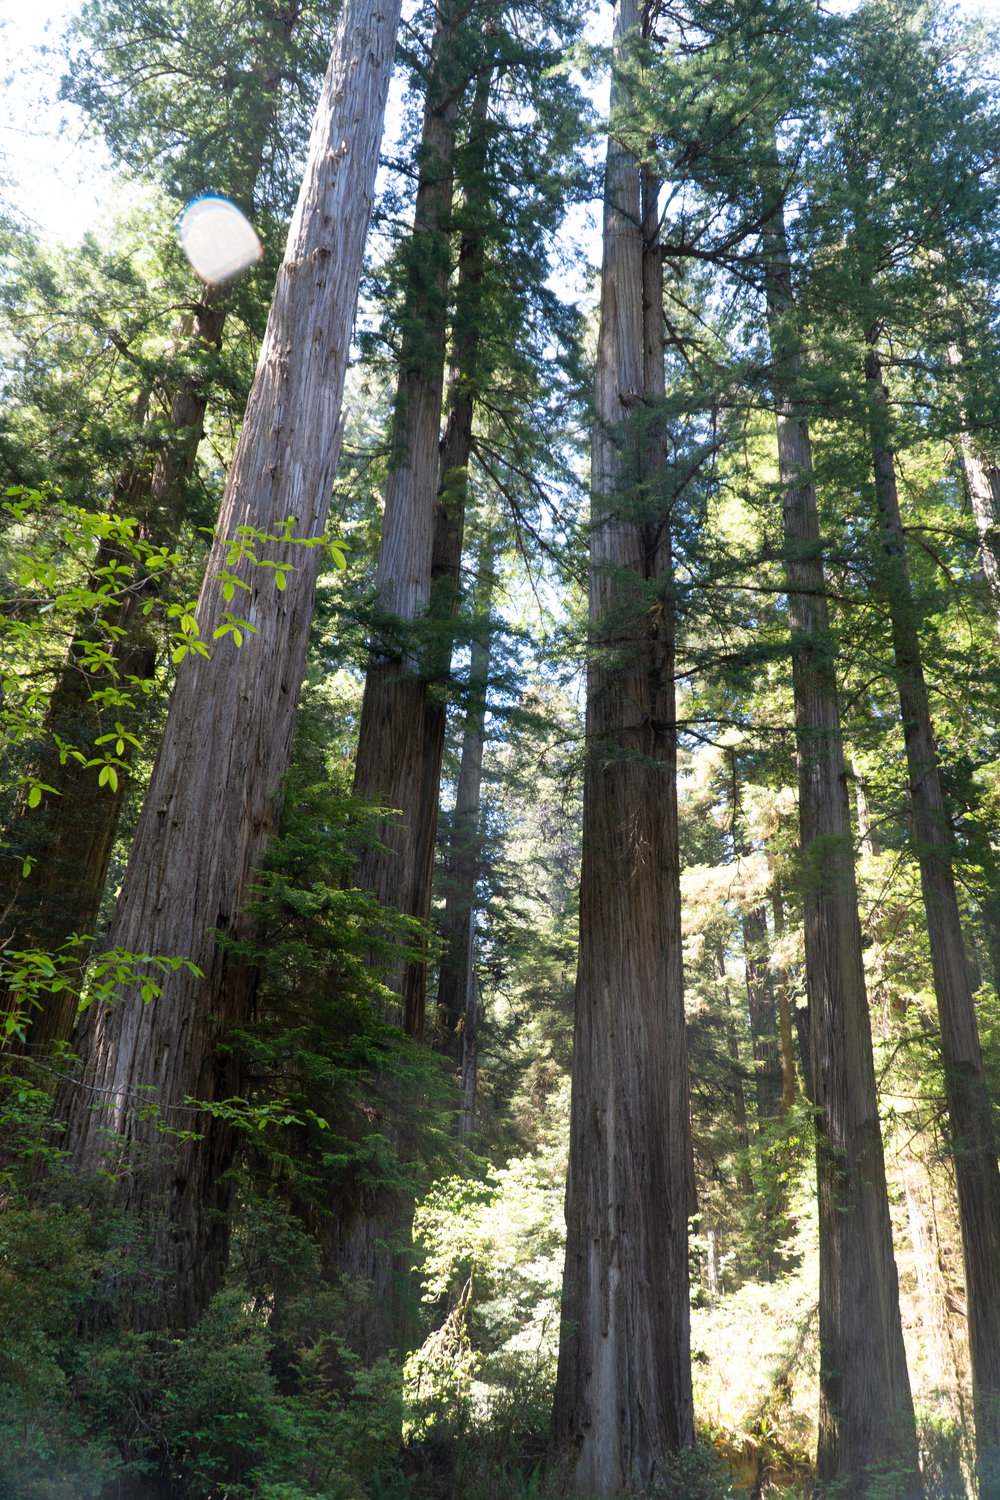 A scenic drive on the Howland Hill Road, Jedediah Redwoods State and National Park